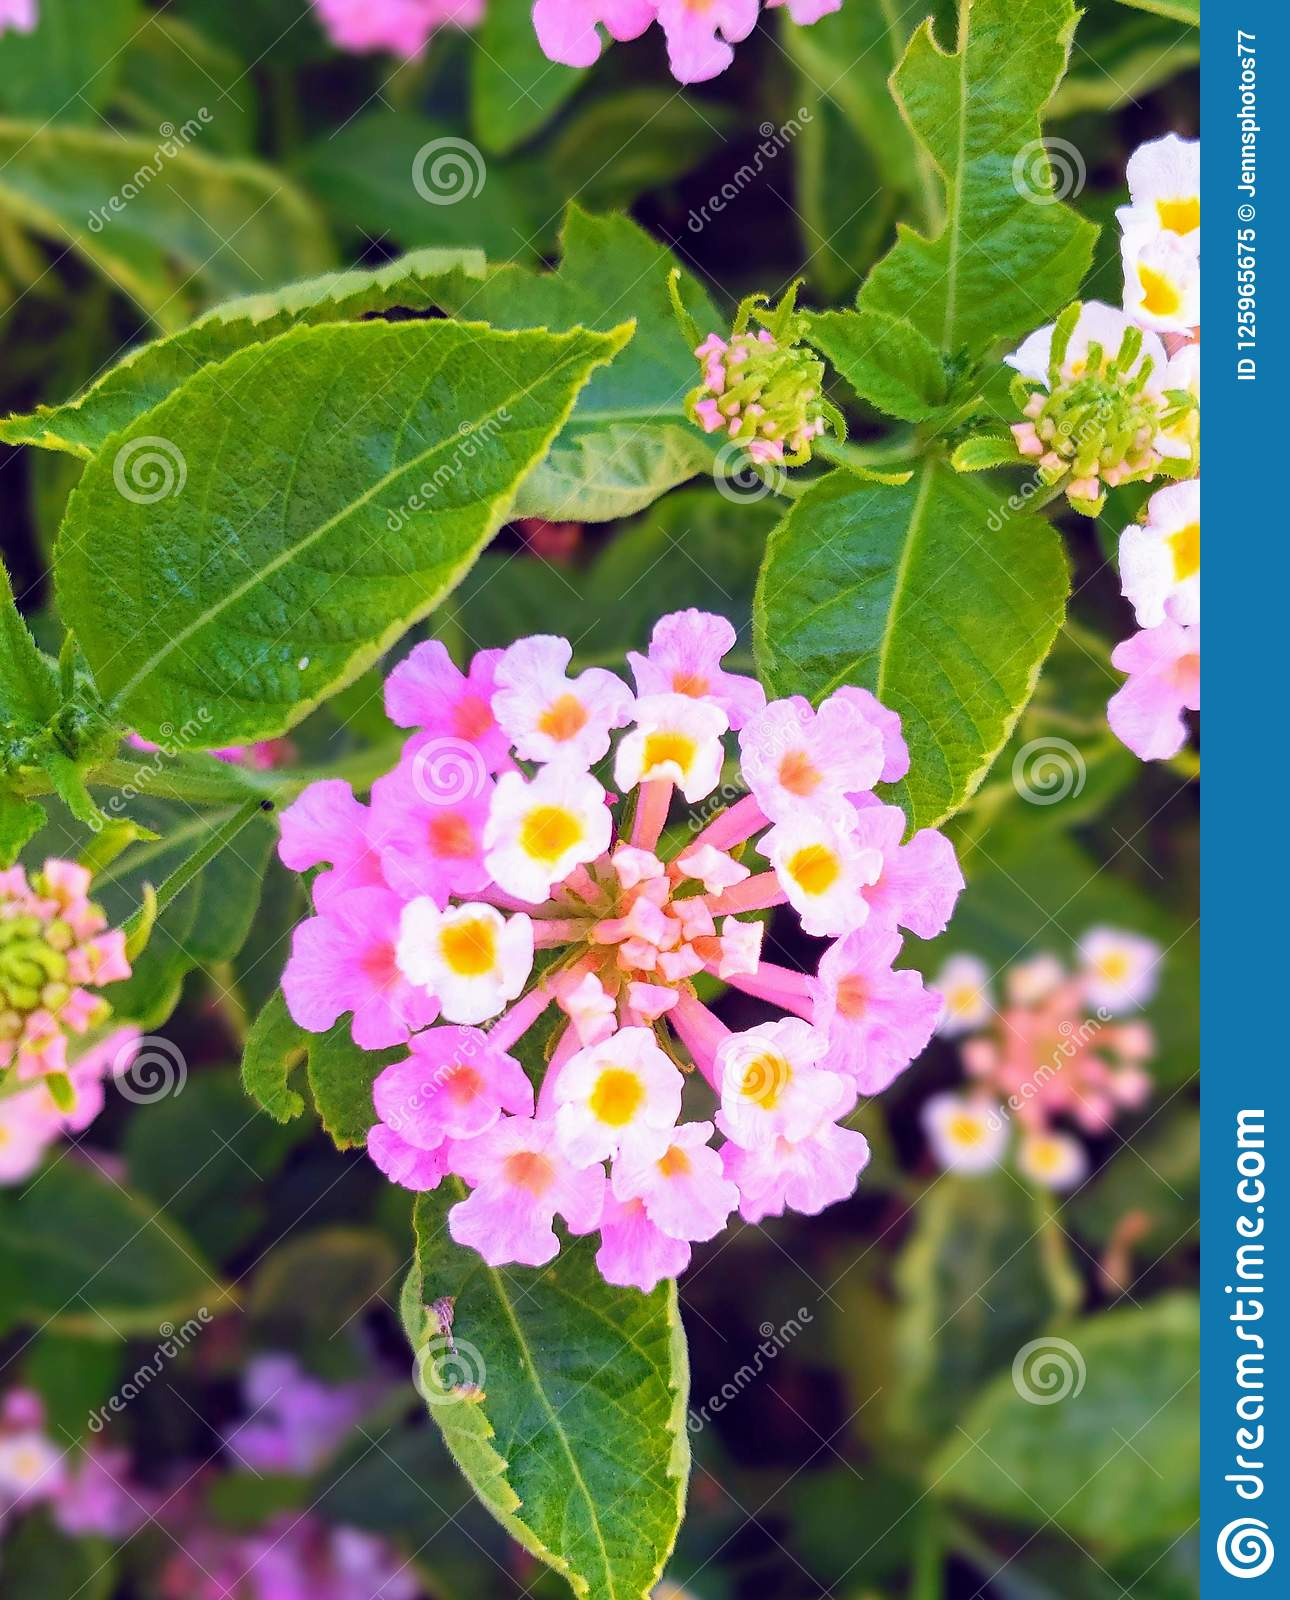 Bush Of Pink And White Flowers Stock Image Image Of White Small